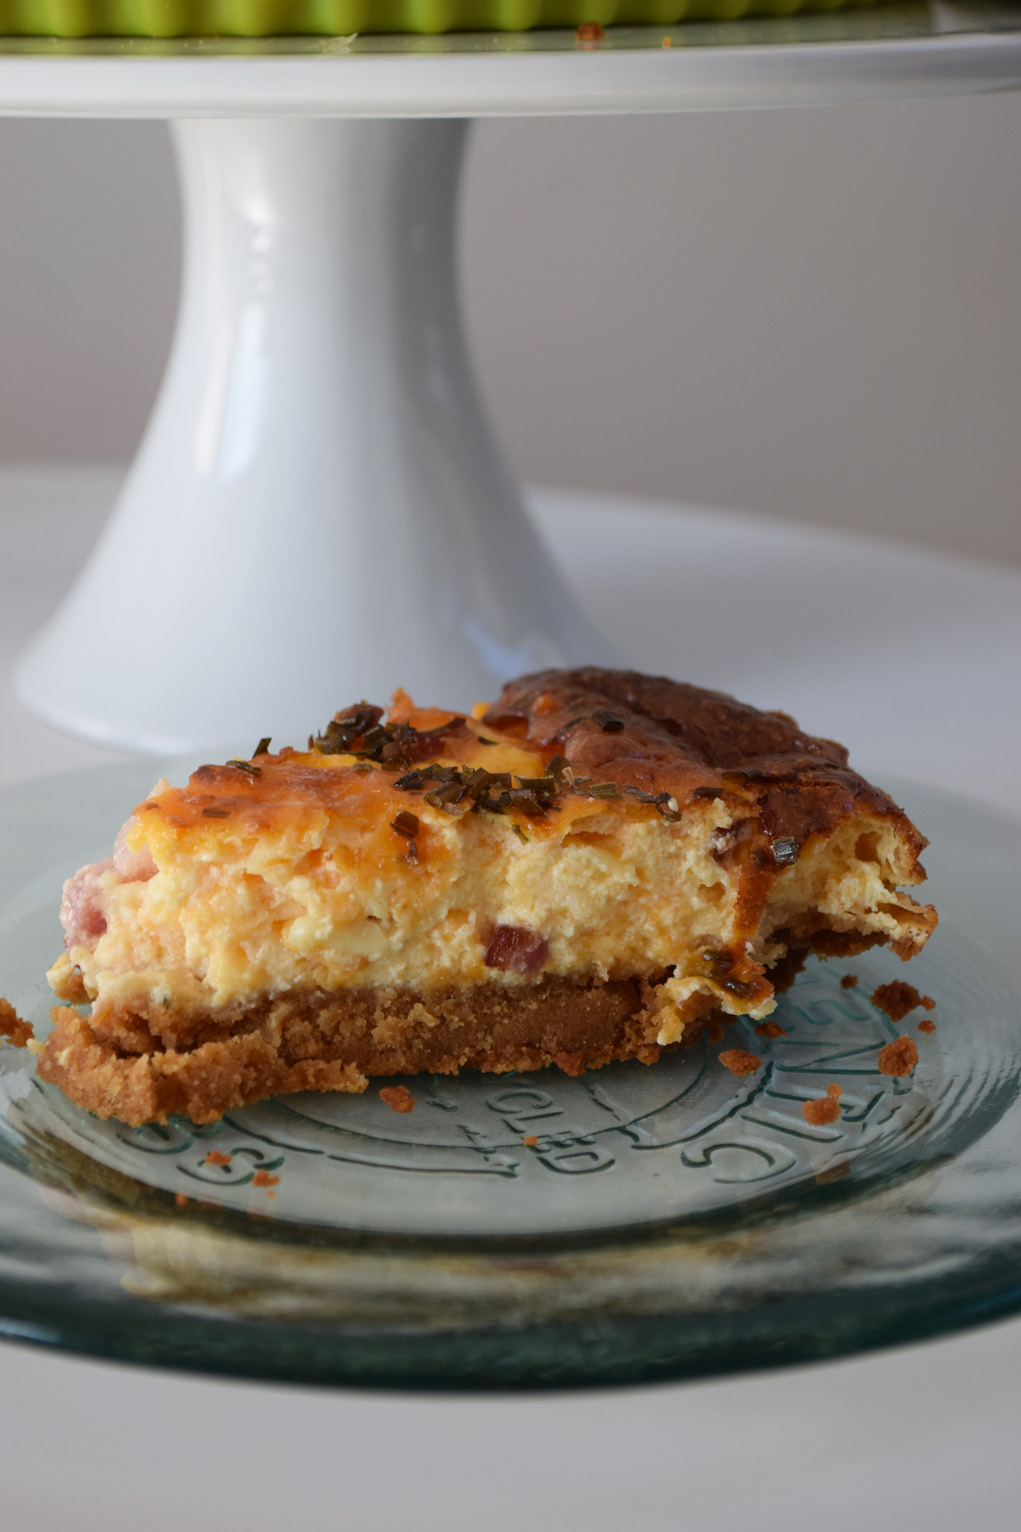 bacon-cheesecake-dsc_0242